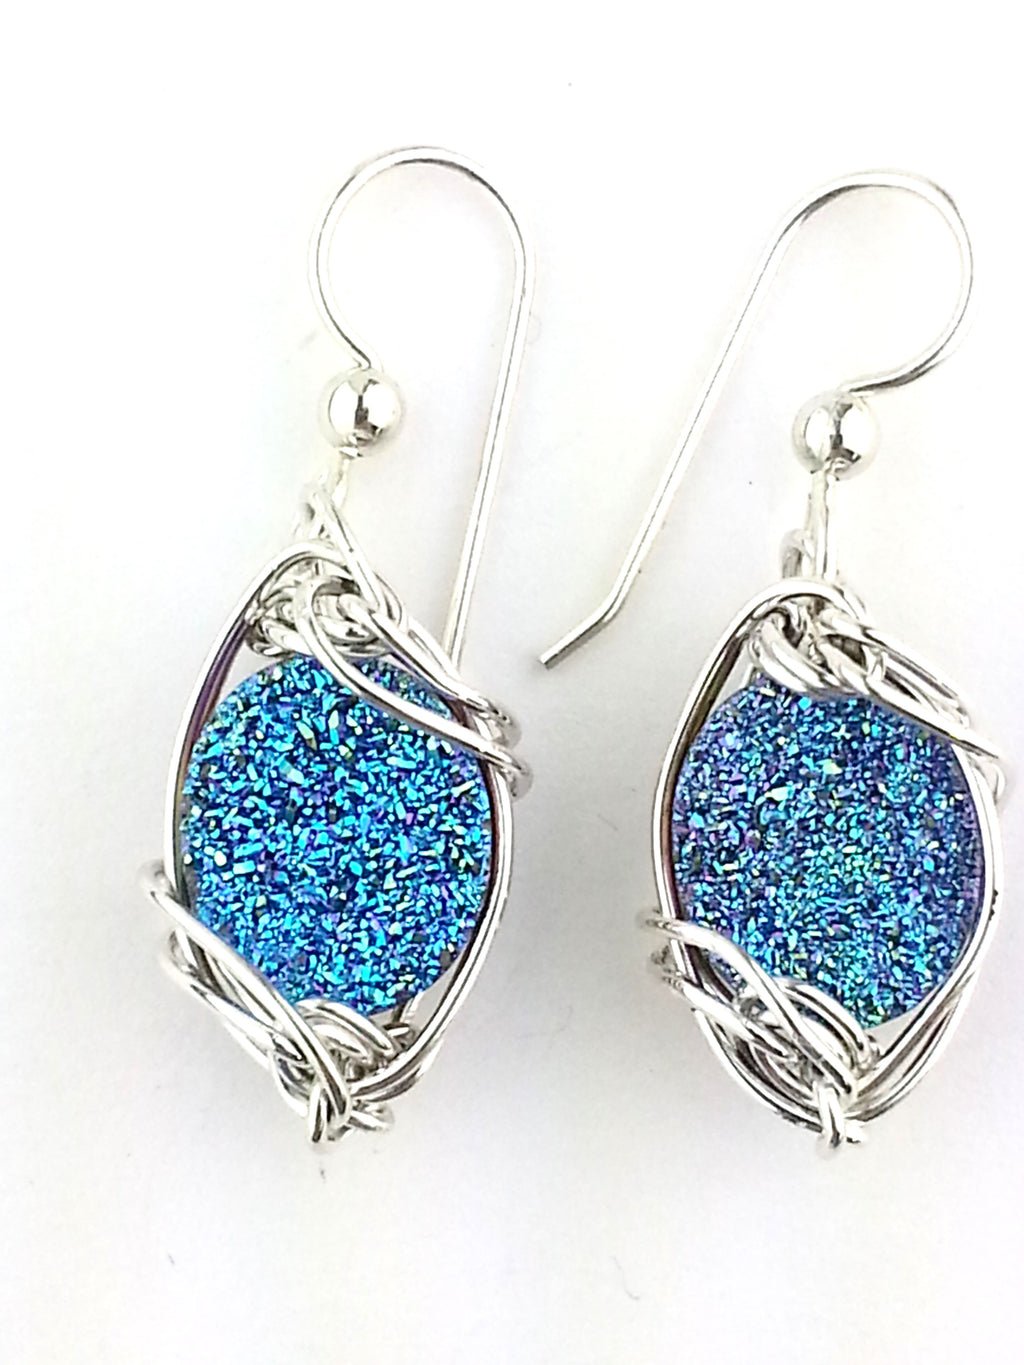 dazzling rich vivid peacock blue druzy quartz  earrings in sterling silver or gold